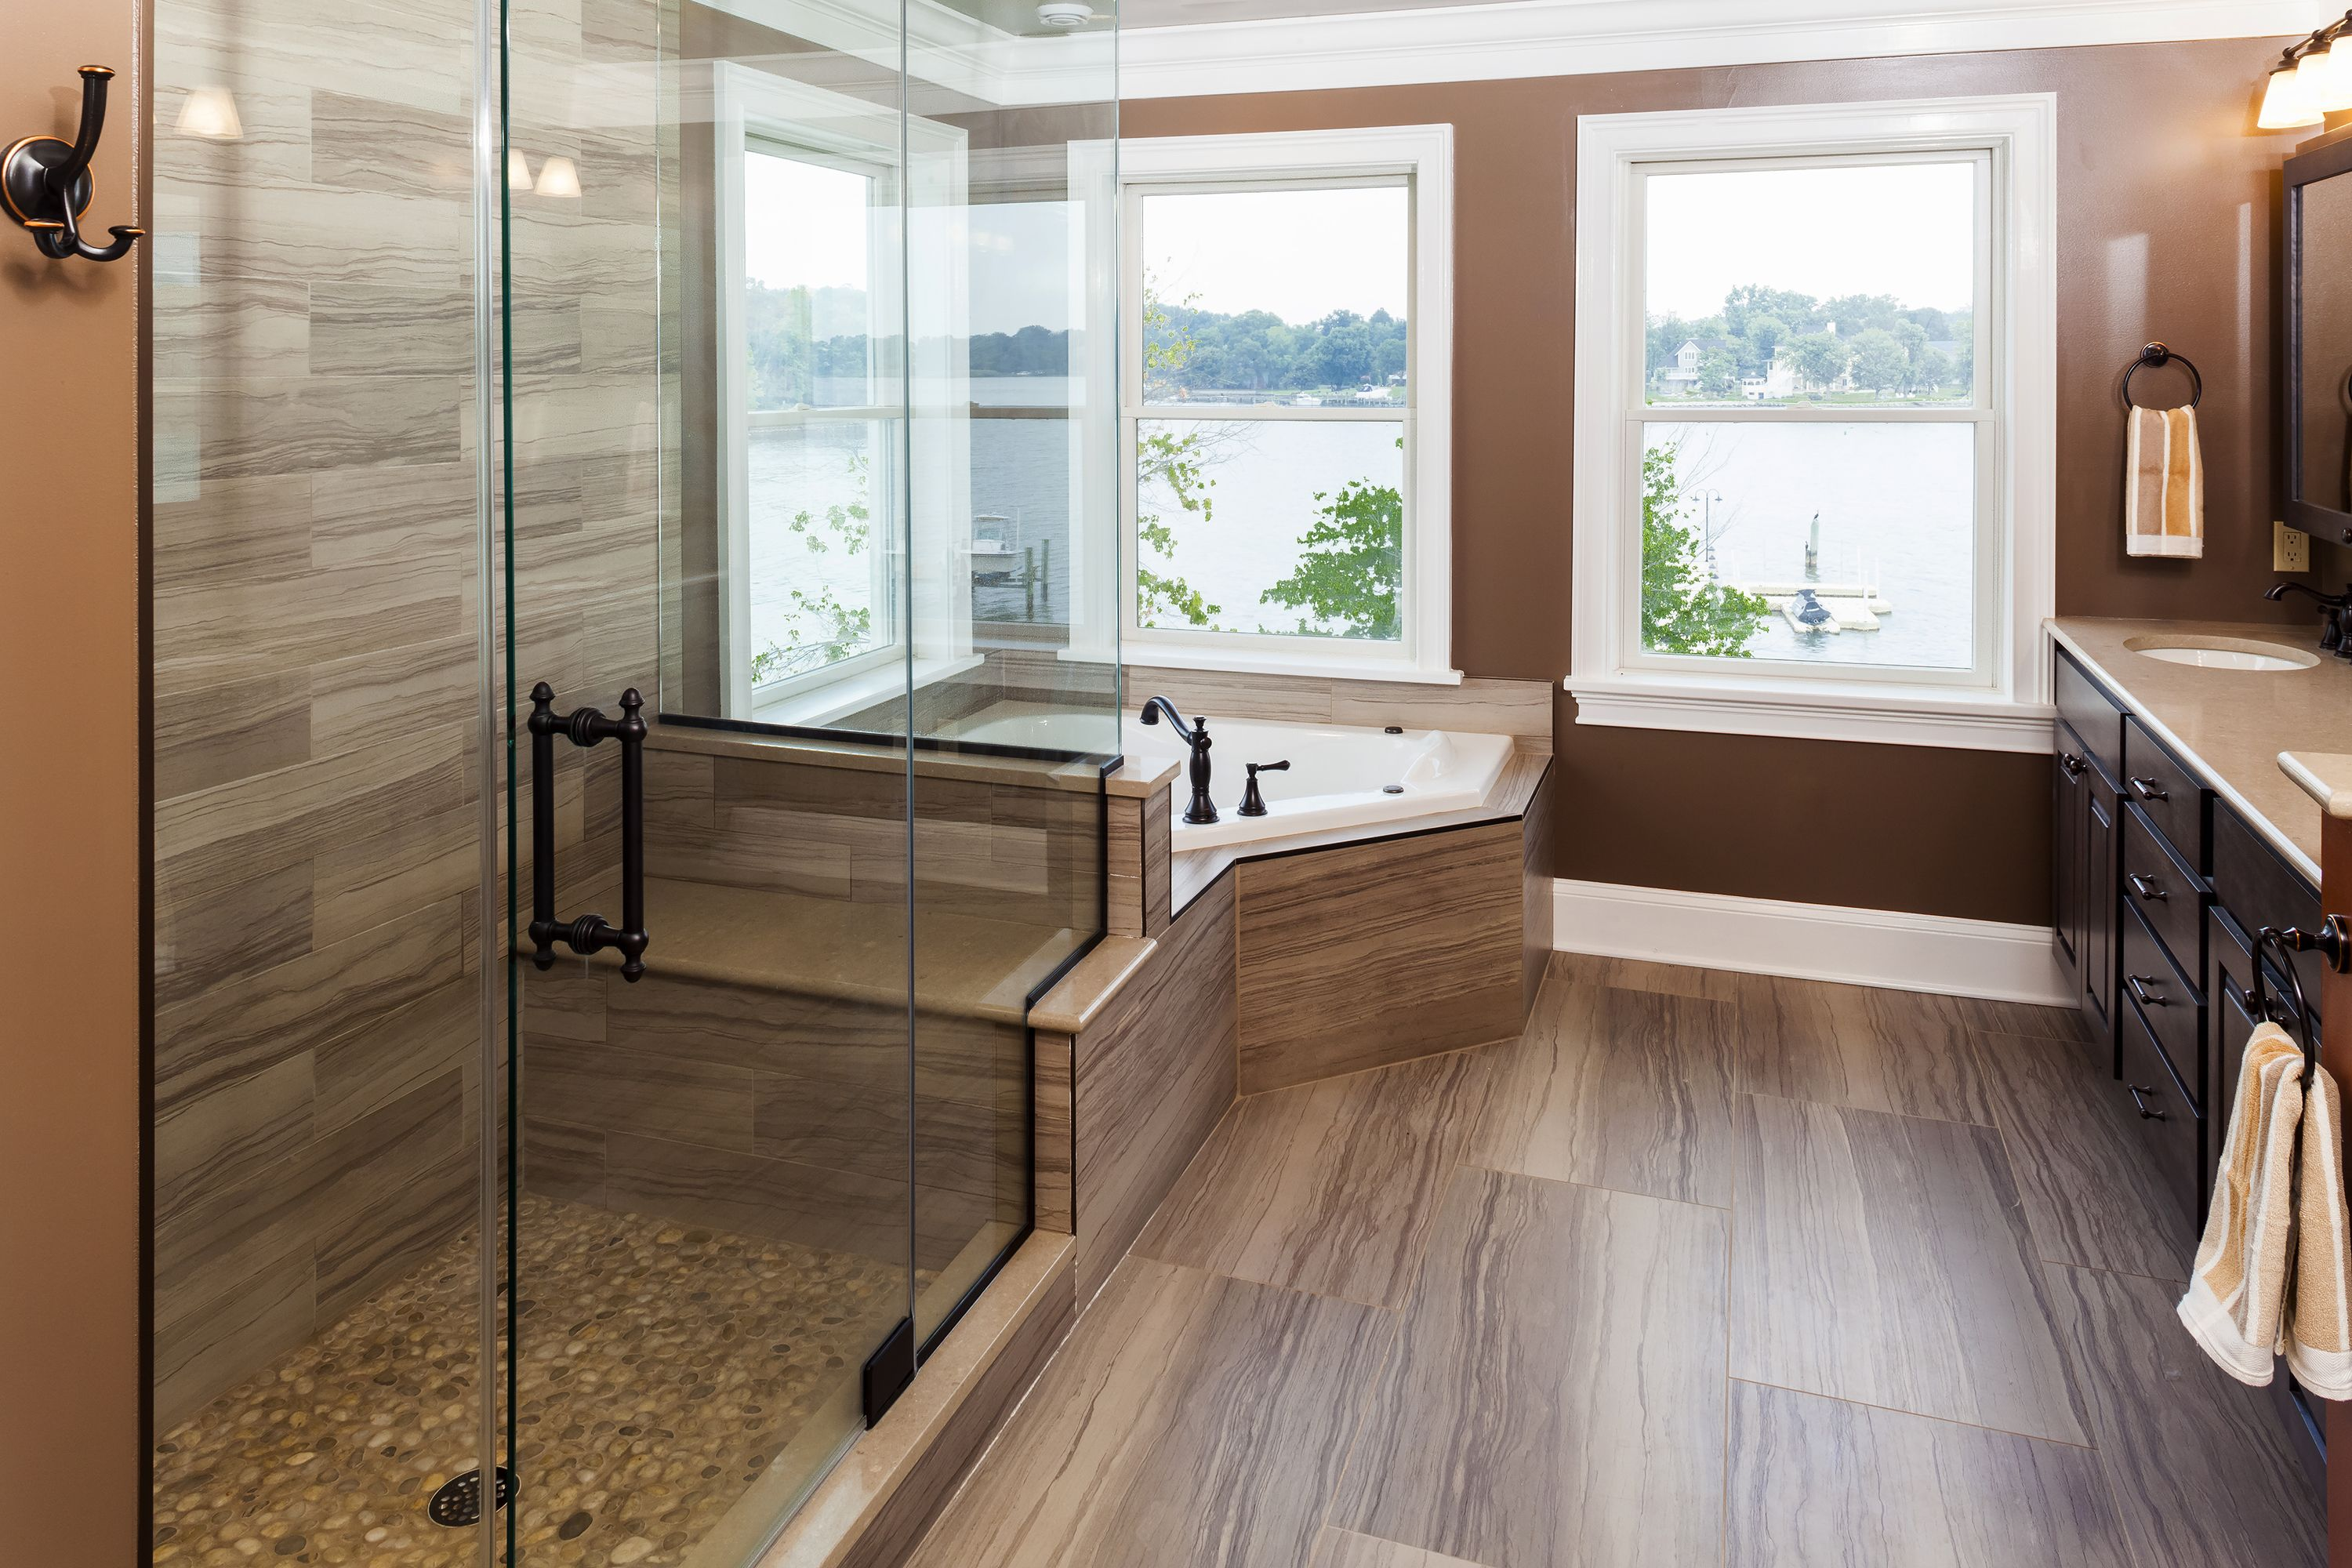 Award Of Excellence Bathroom Remodel Under 75 000 Owings Home Services Project Master Bath R Bathrooms Remodel Master Bath Renovation Bathroom Remodel Master [ jpg ]